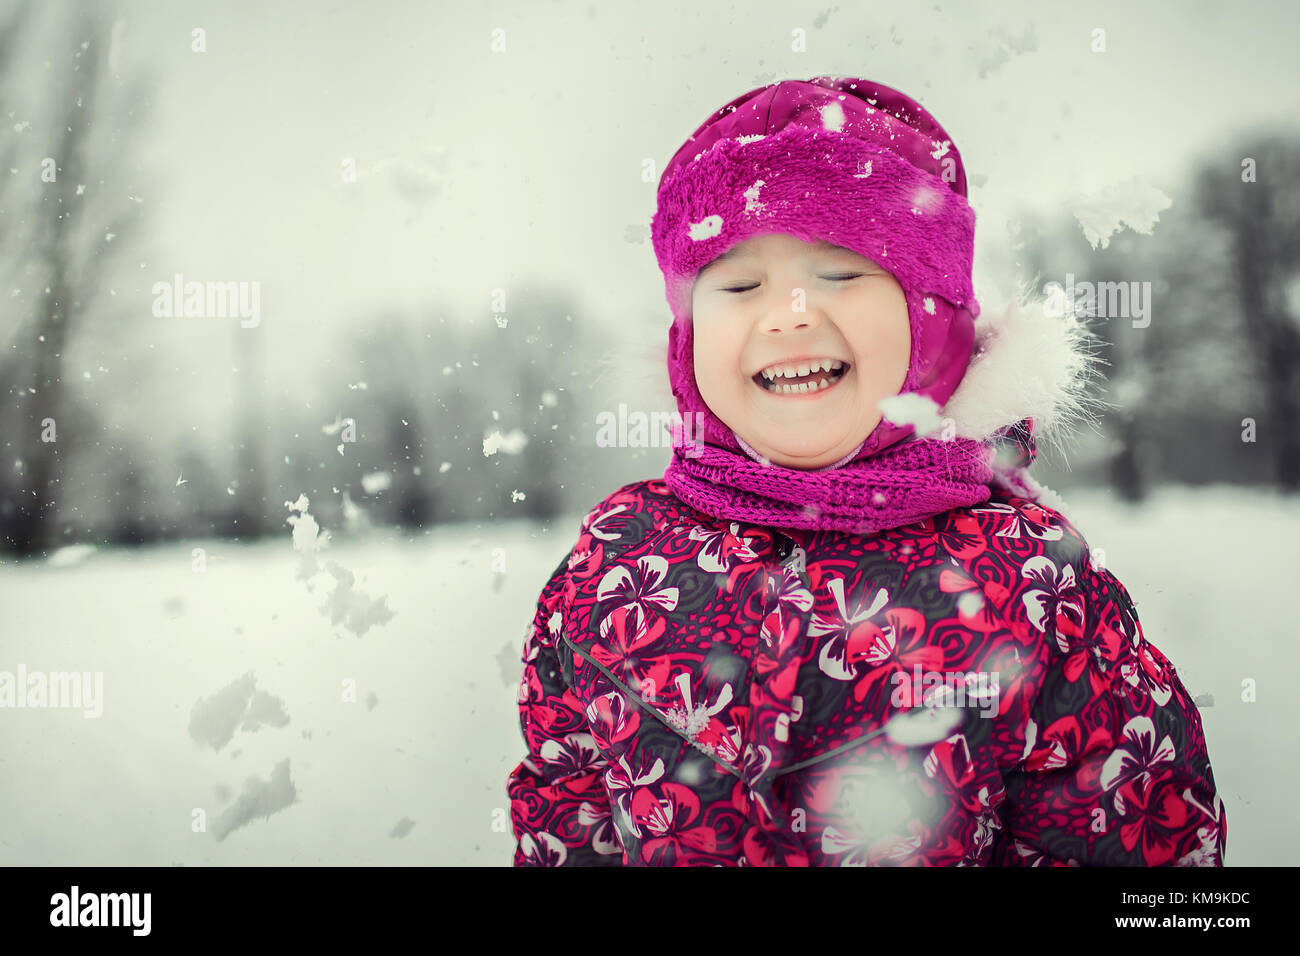 kid playing with snowflakes in winter forest - Stock Image